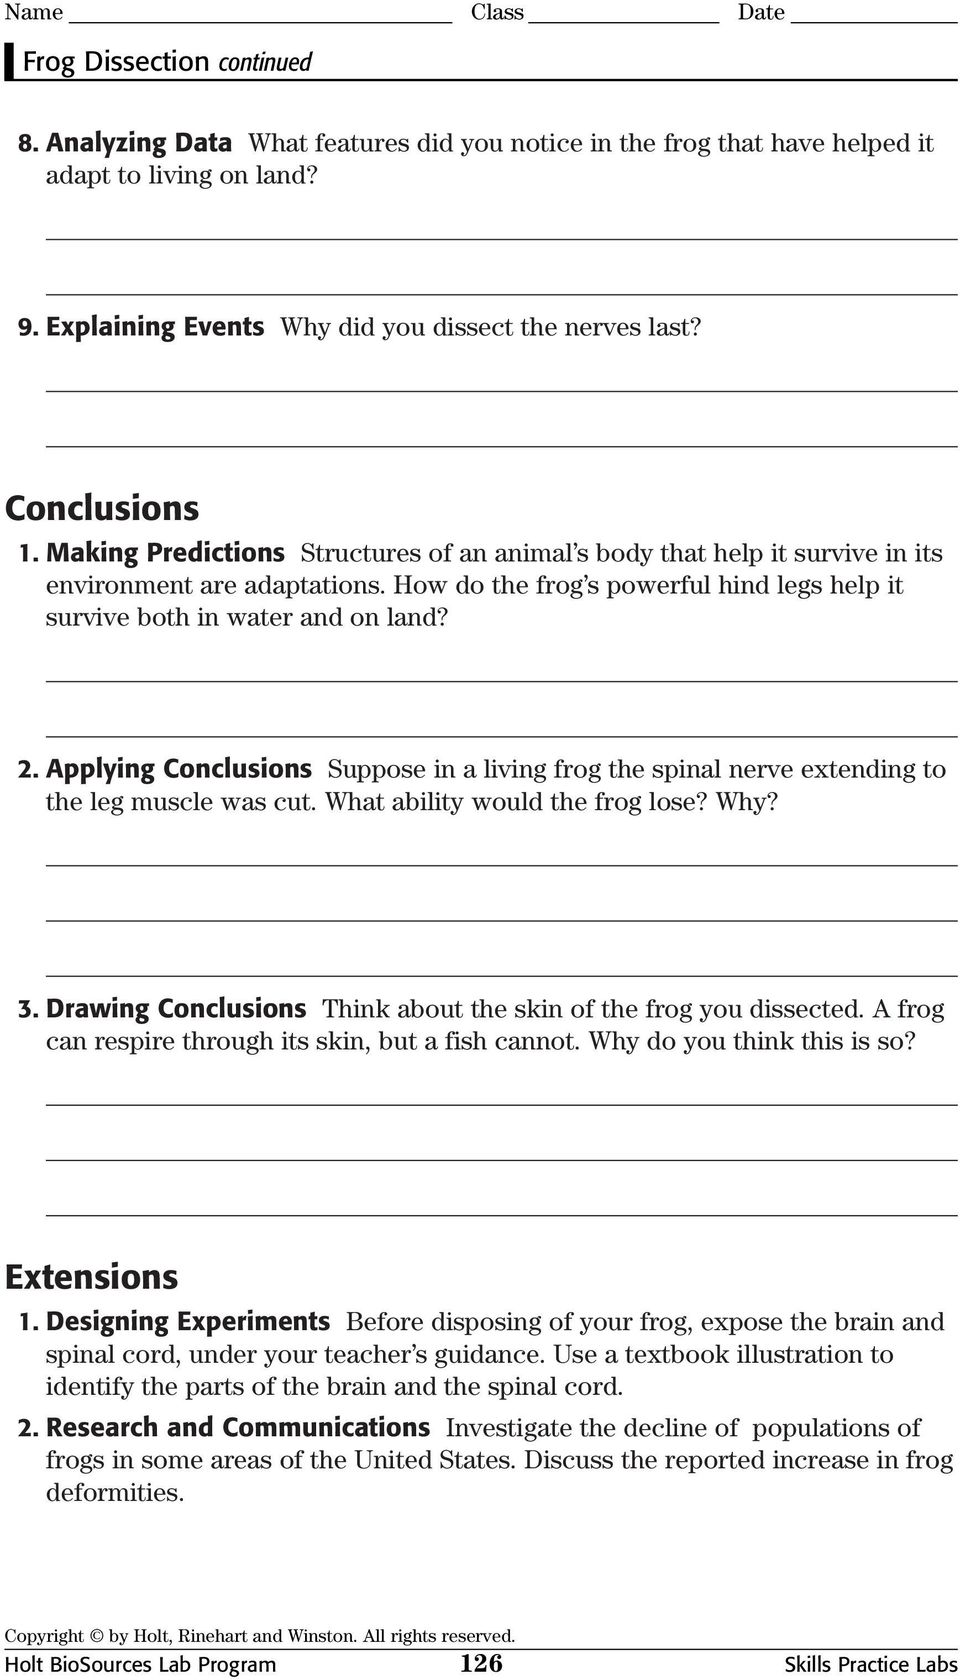 Frog Dissection. Procedure - PDF